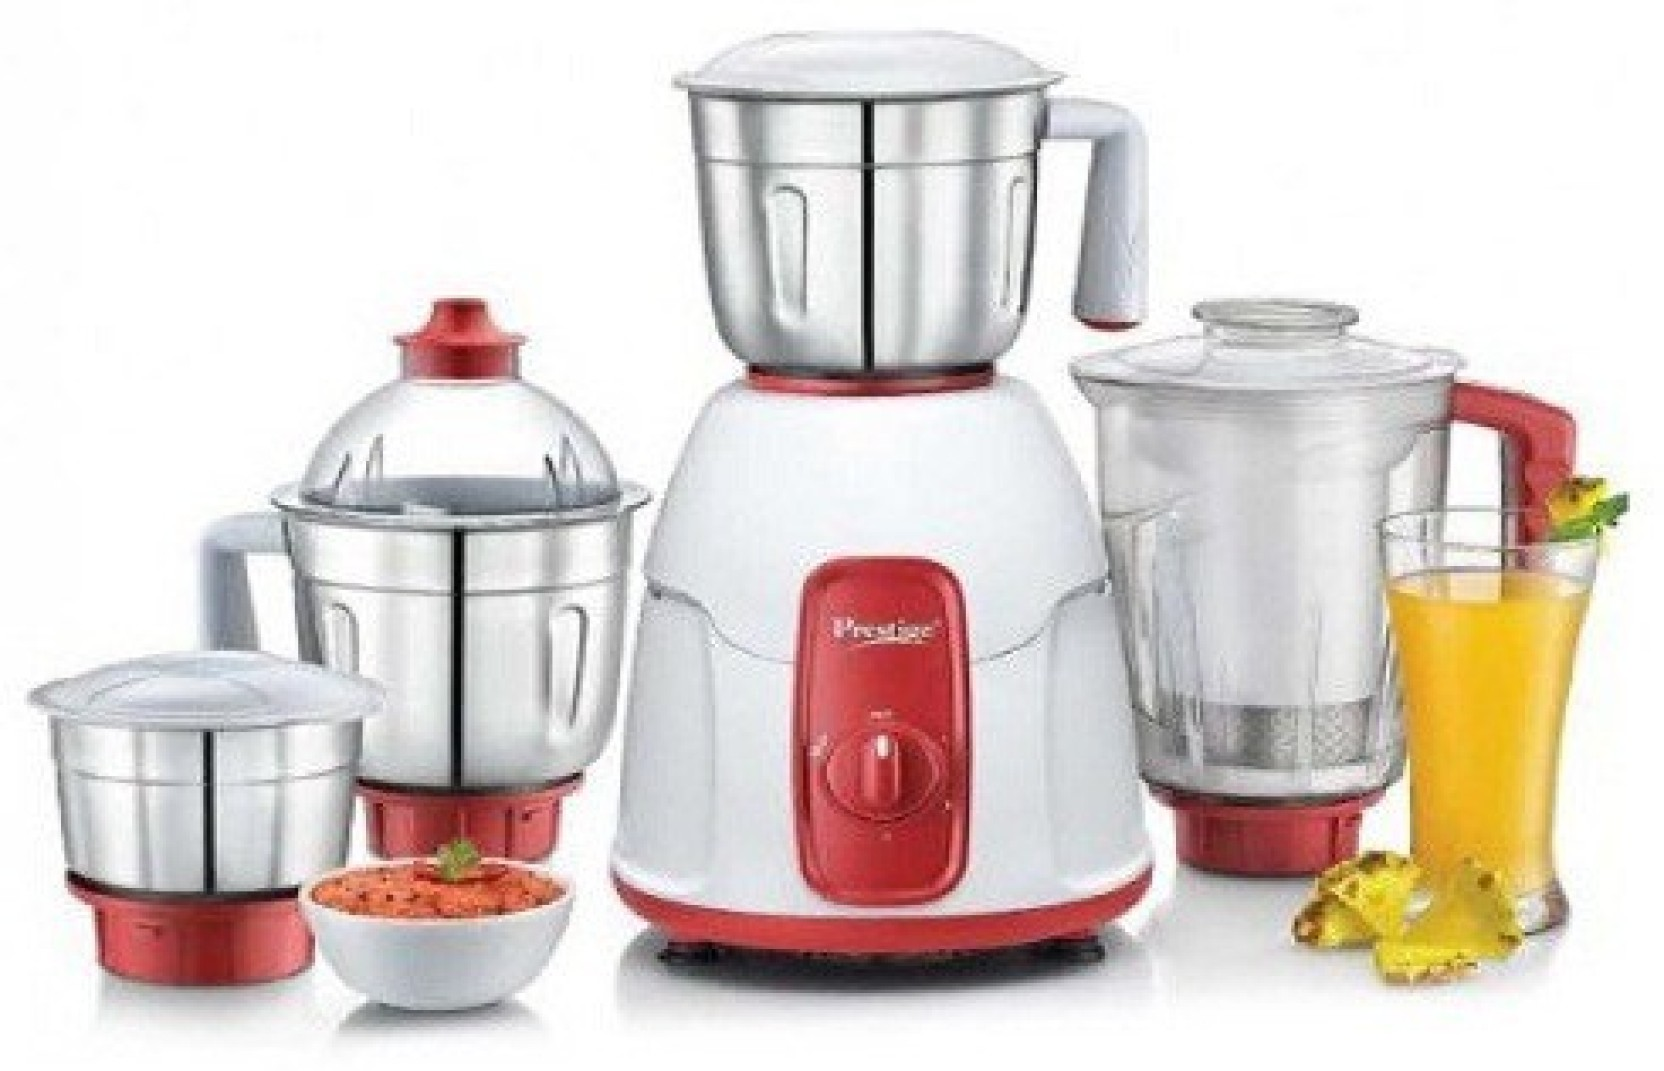 Prestige Kitchen Appliances Prestige Elegant 750 W Juicer Mixer Grinder Price In India Buy